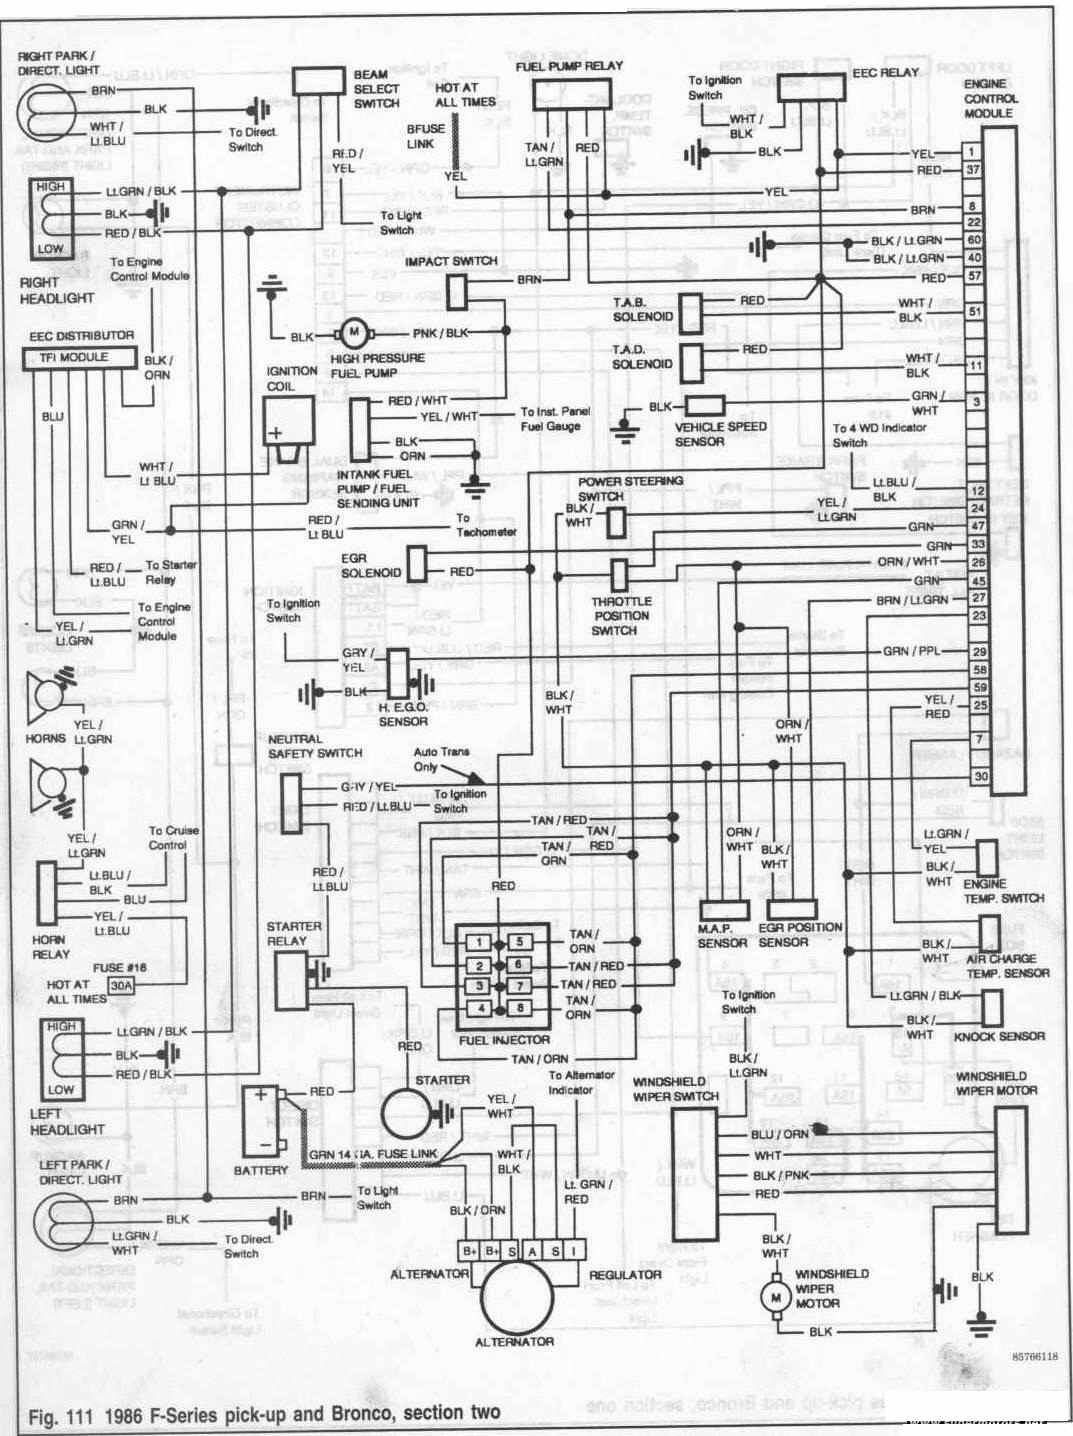 81 ford alternator wiring schematic wiring diagram 81 ford truck alternator wiring [ 1073 x 1436 Pixel ]